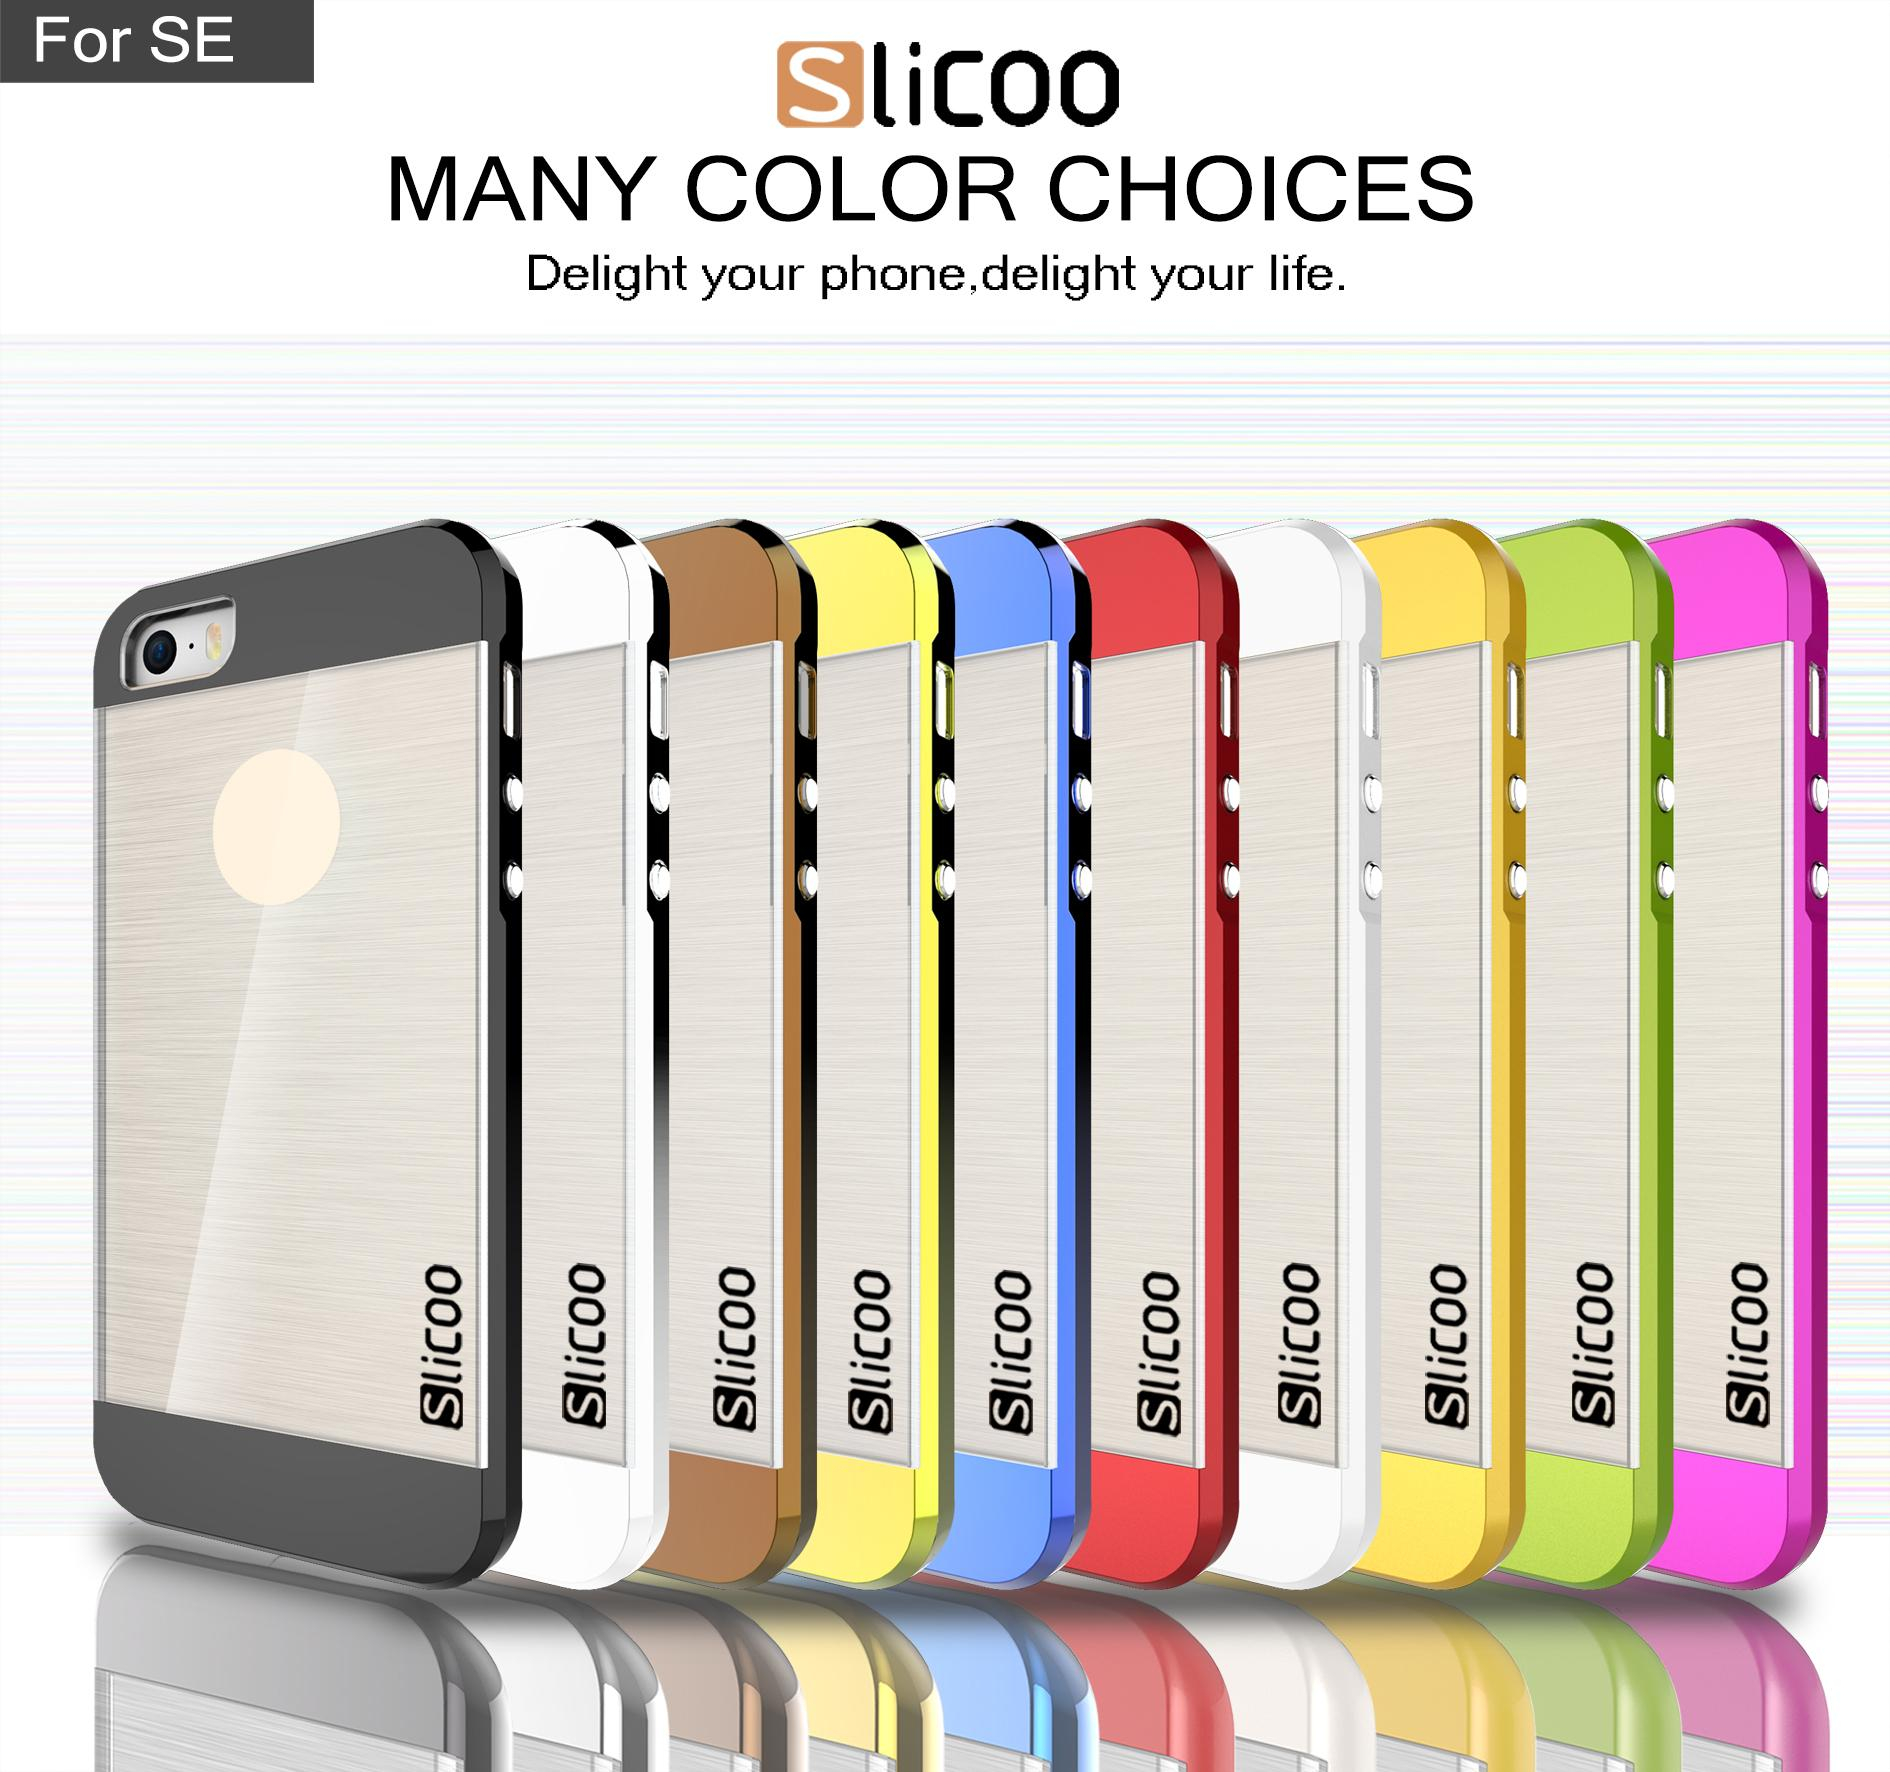 quality design 4a6af 68c40 New For S7 Edge Protective Case Slicoo Hybrid PC TPU Soft Case for Iphone  6s Plus Galaxy S6 phone back cover DHL SCA132